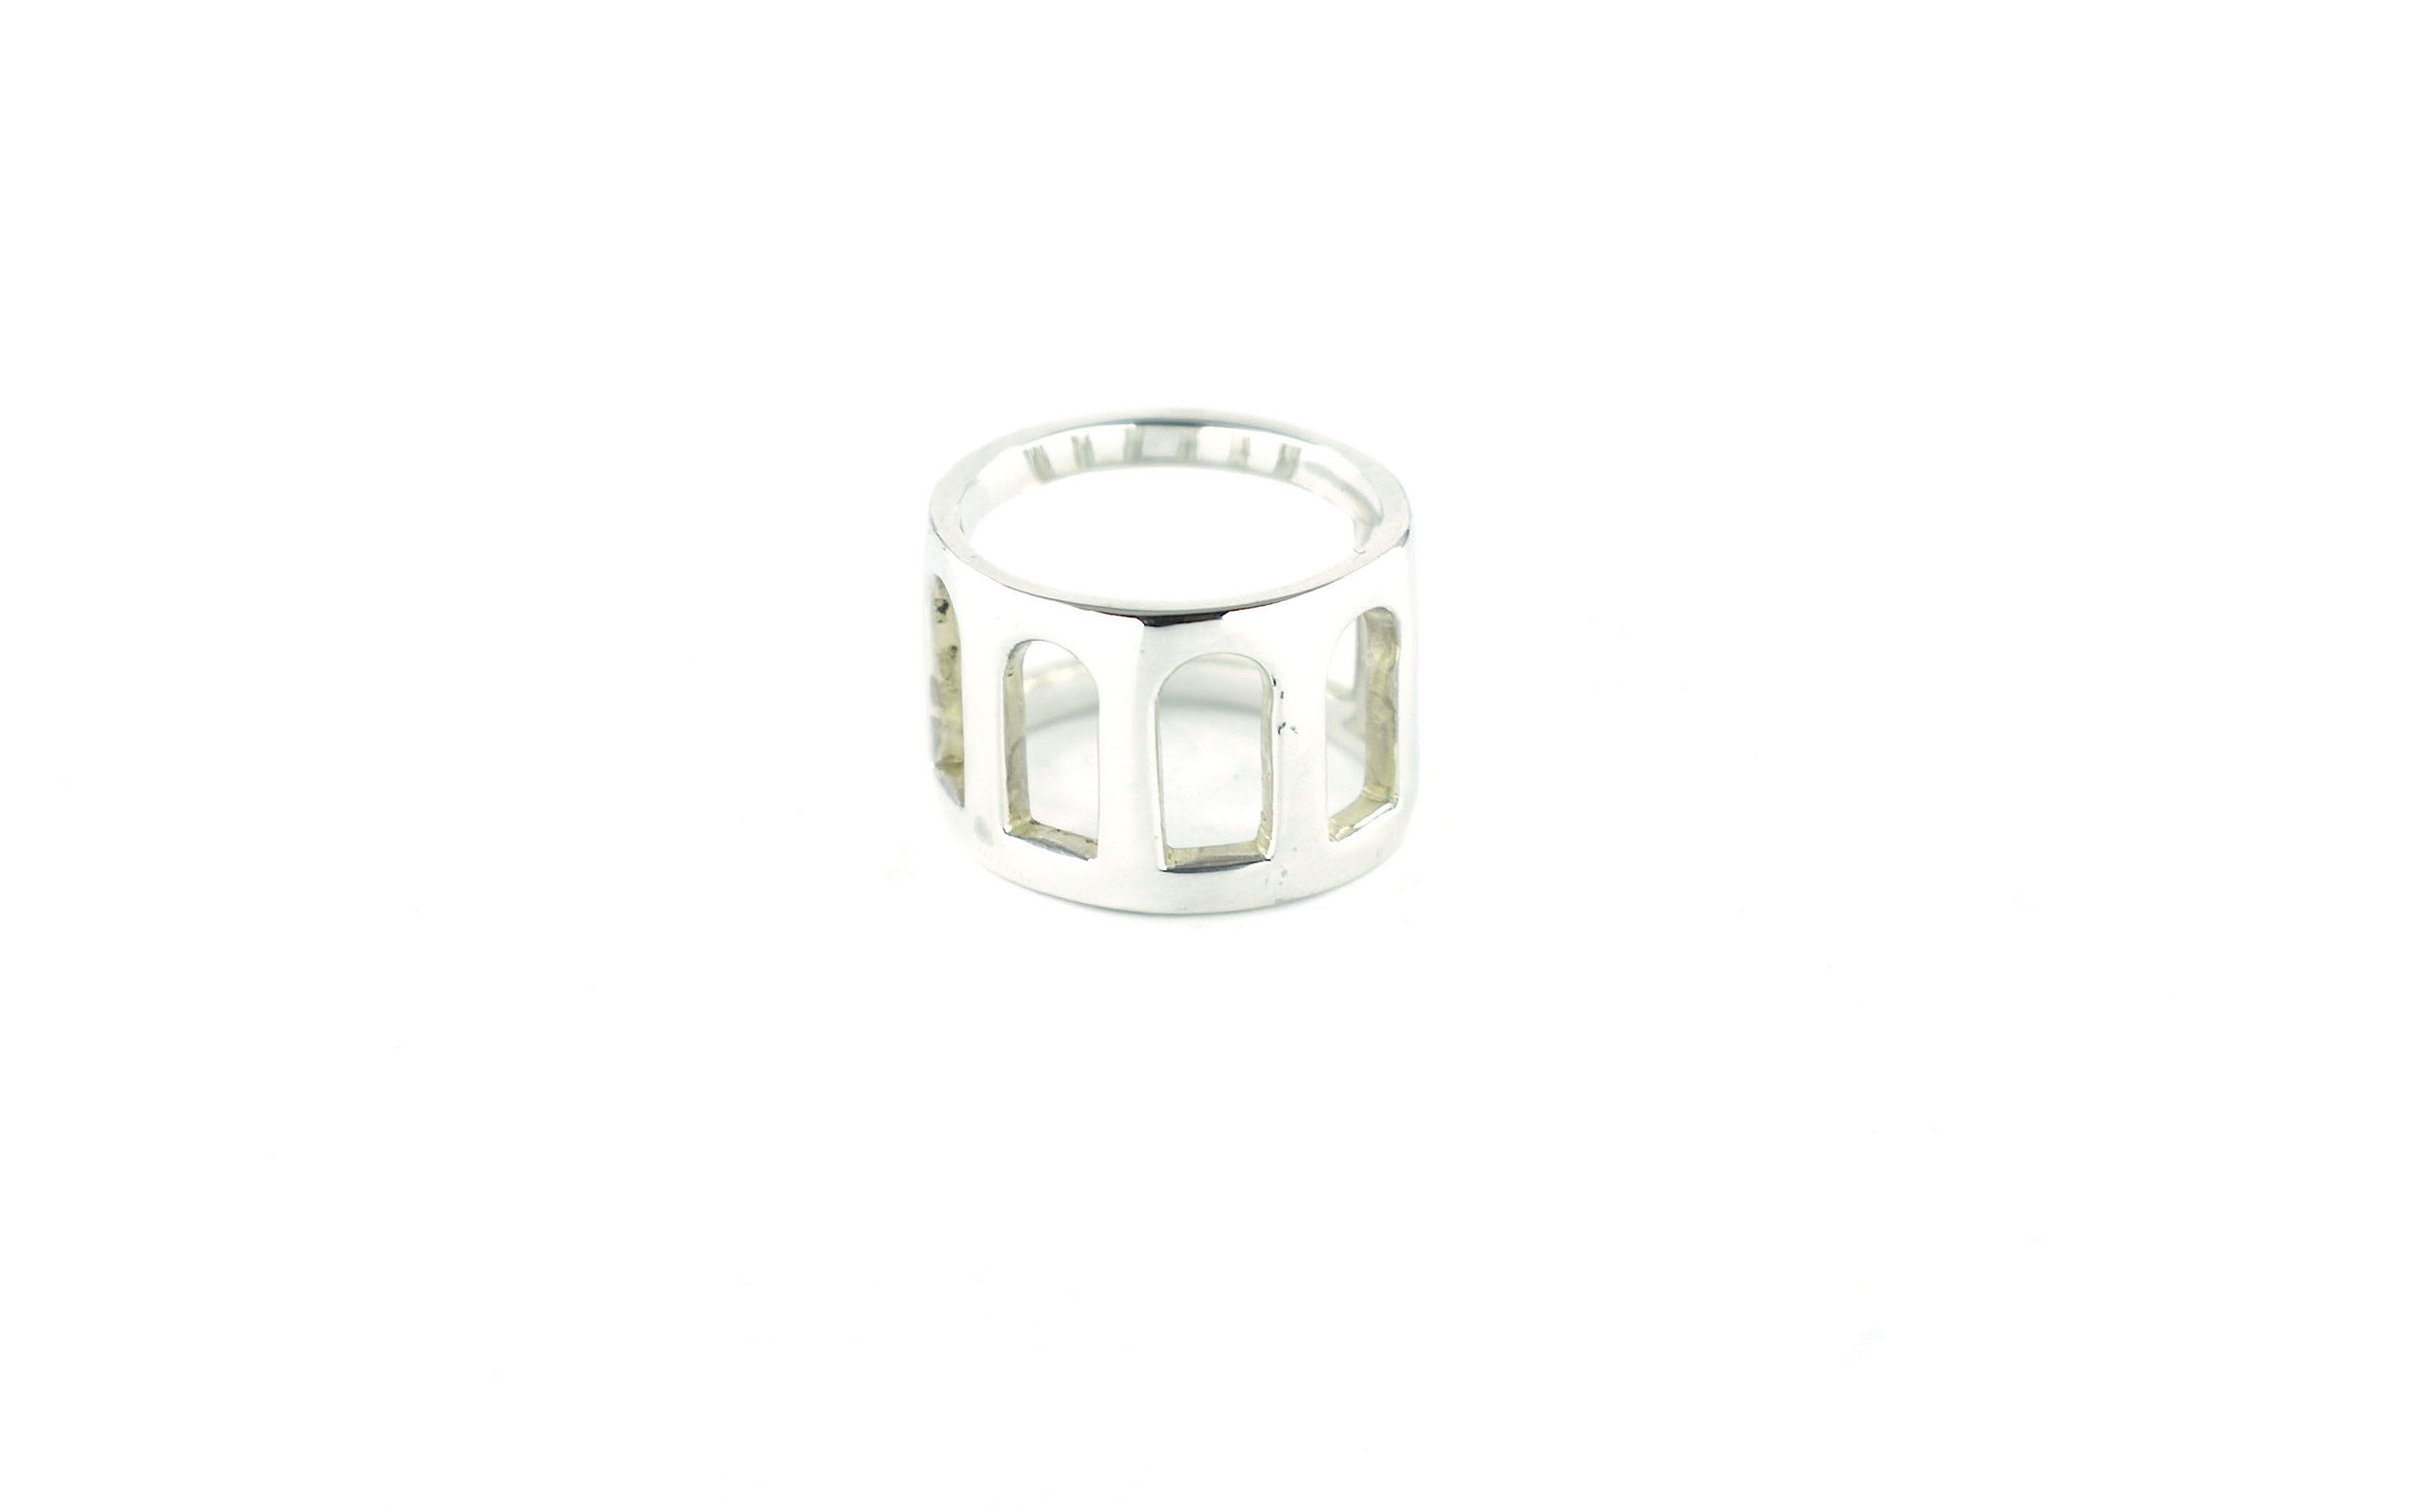 NOTRE DAME RING